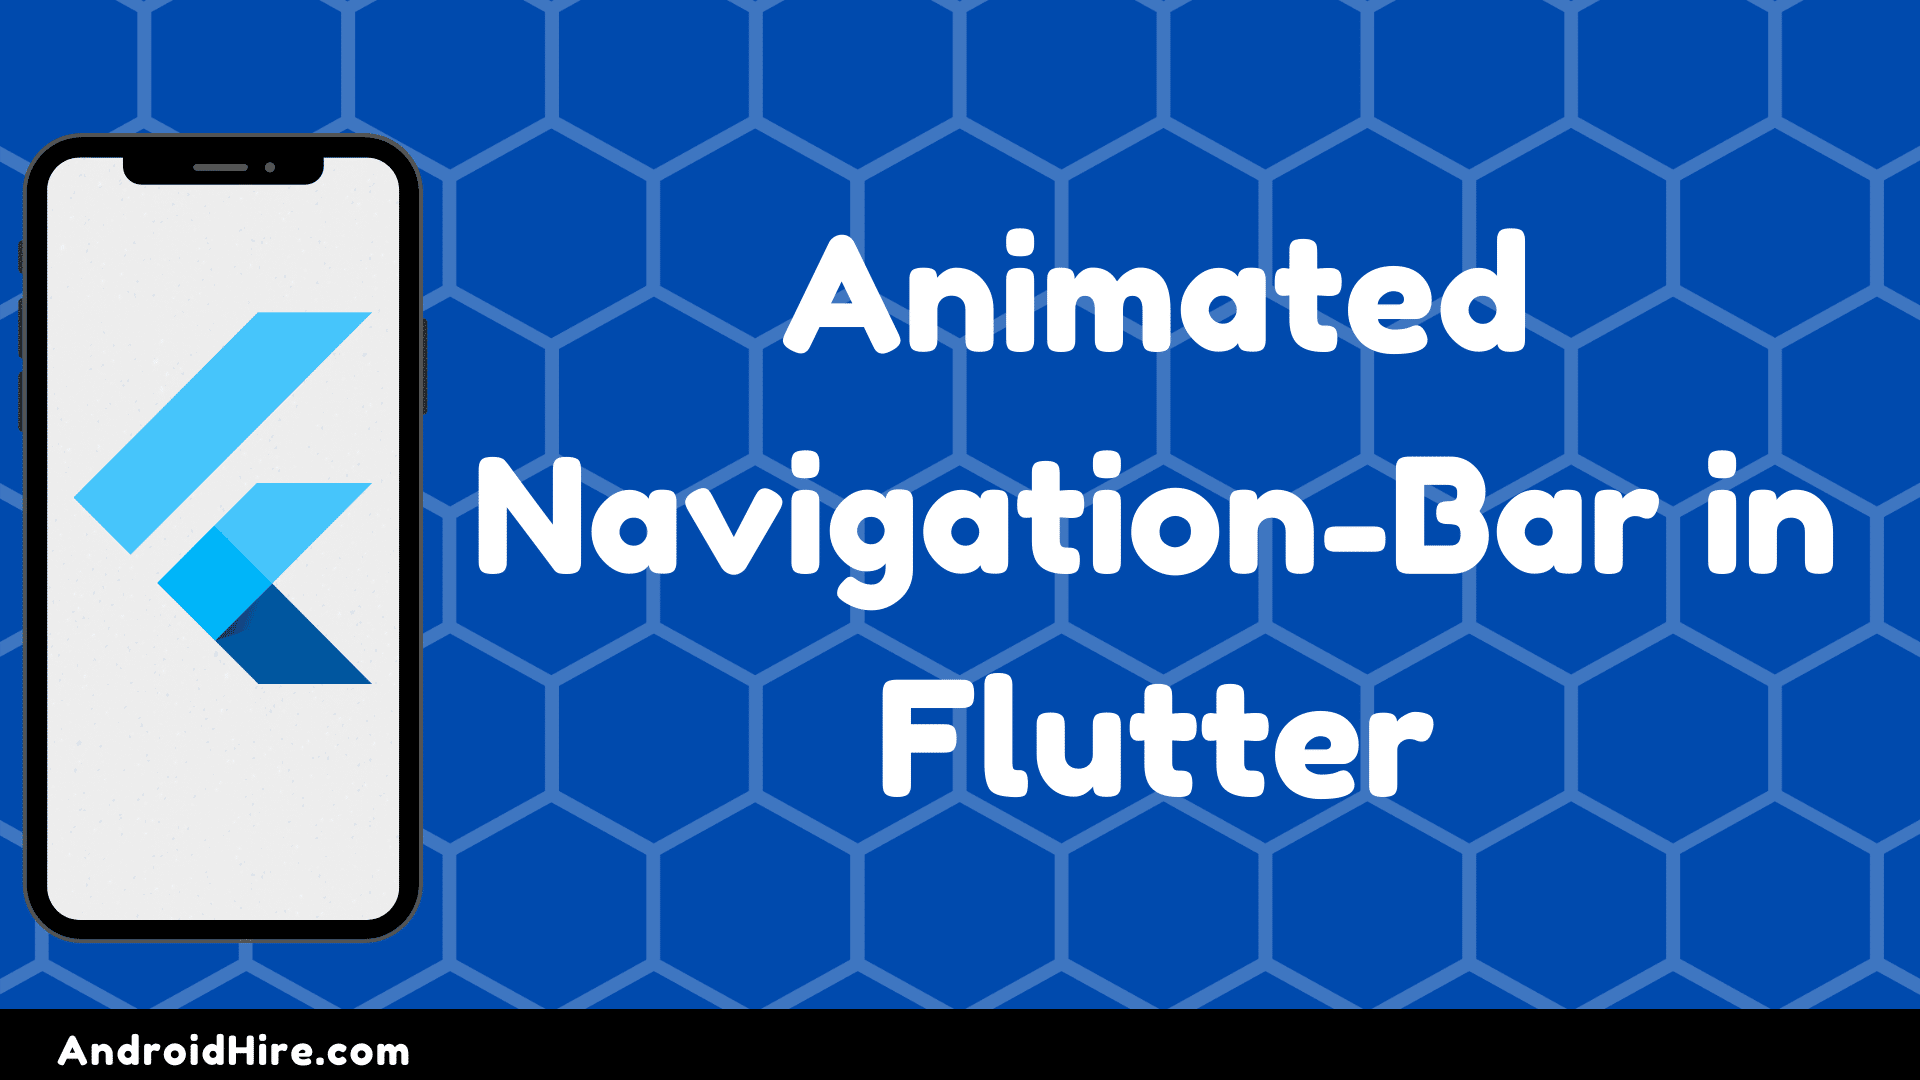 Animated Navigation-Bar in Flutter